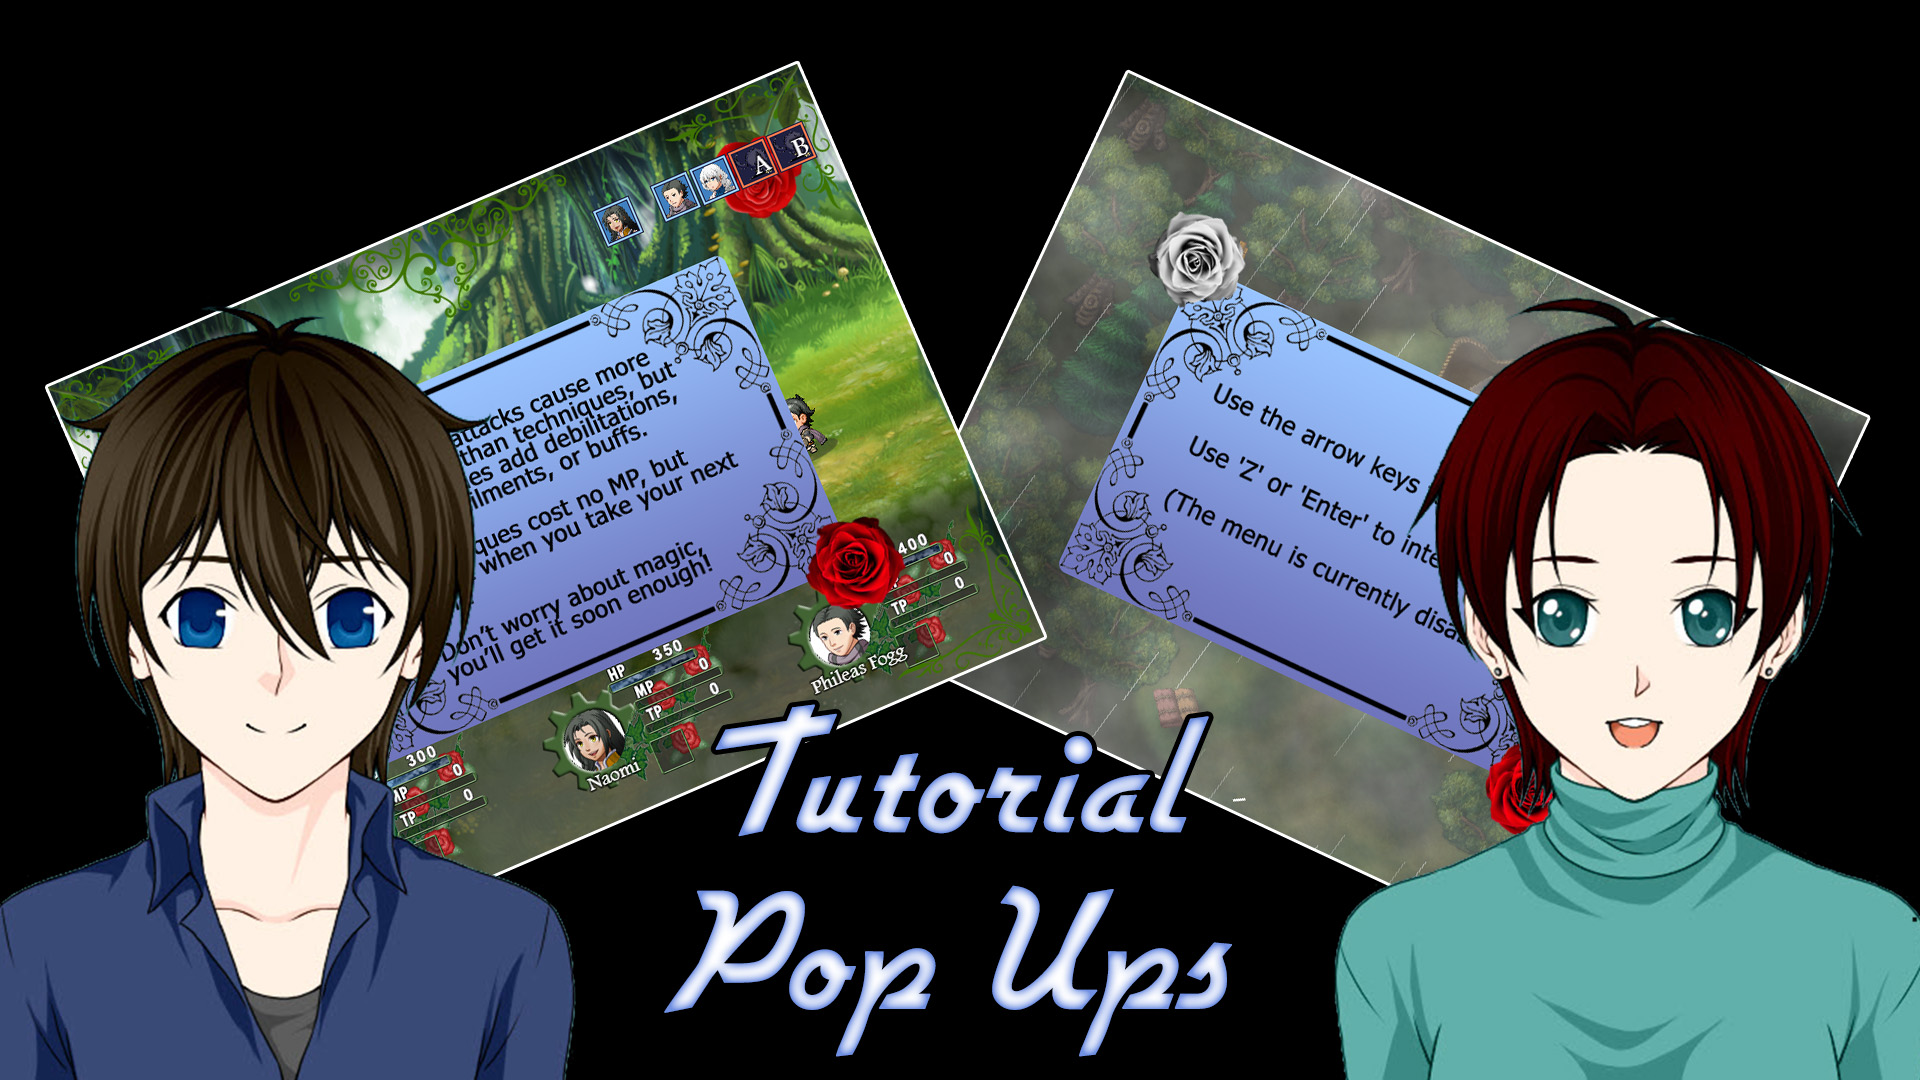 Rosenhearts – Tutorial Pop Up Tests